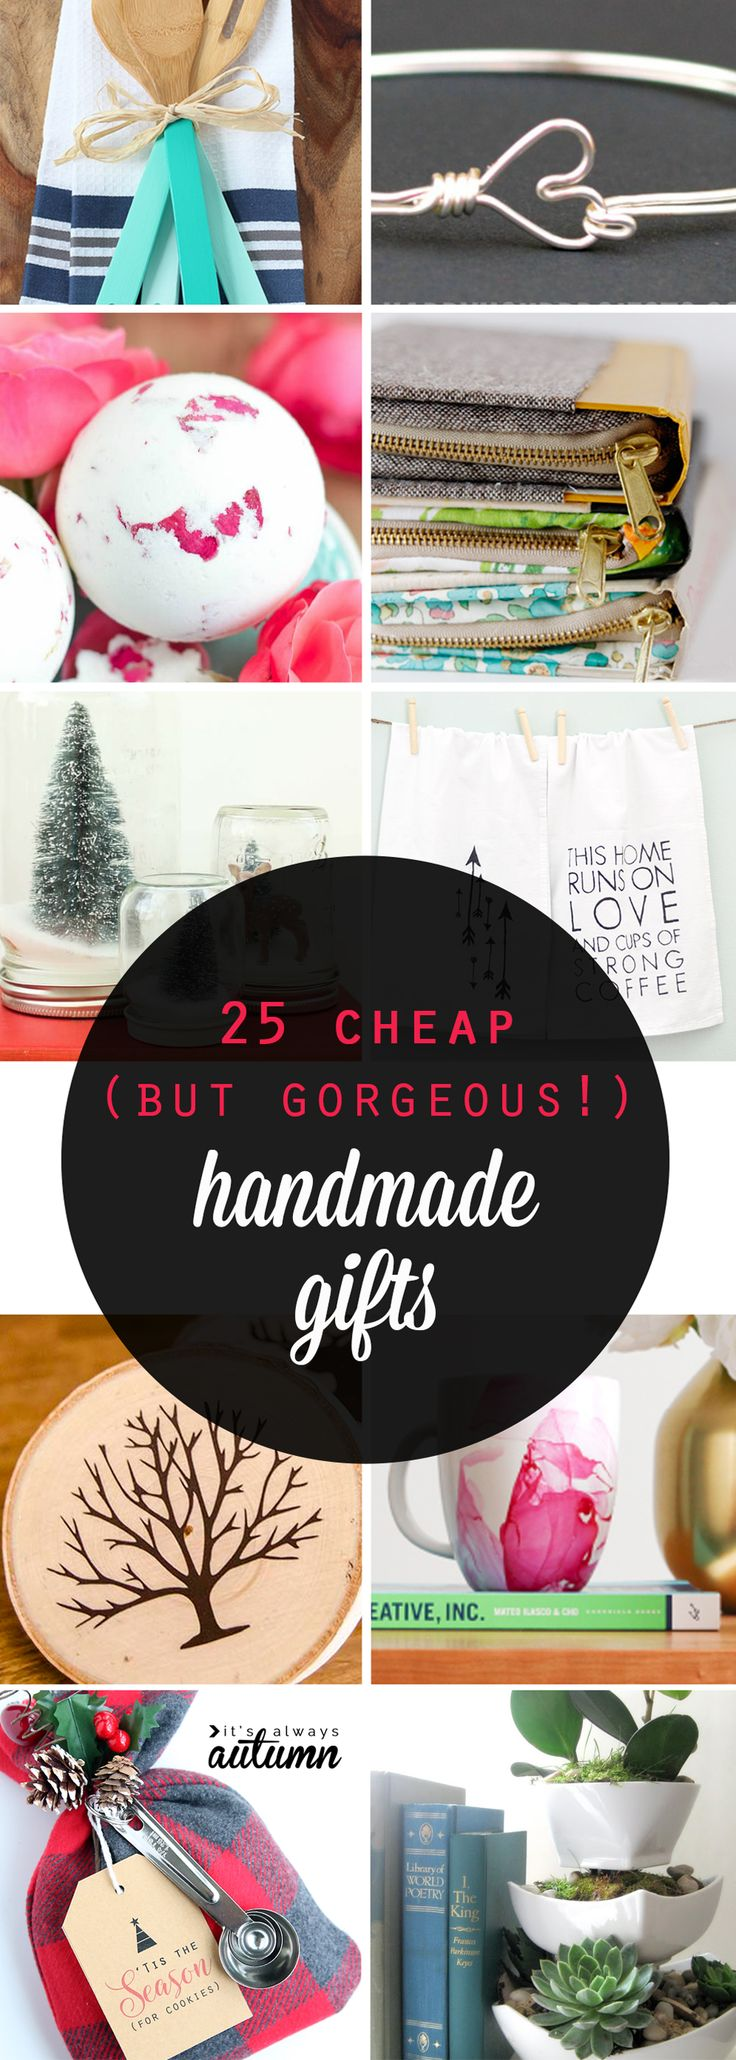 Birthday Gifts Great List Of Gorgeous Handmade